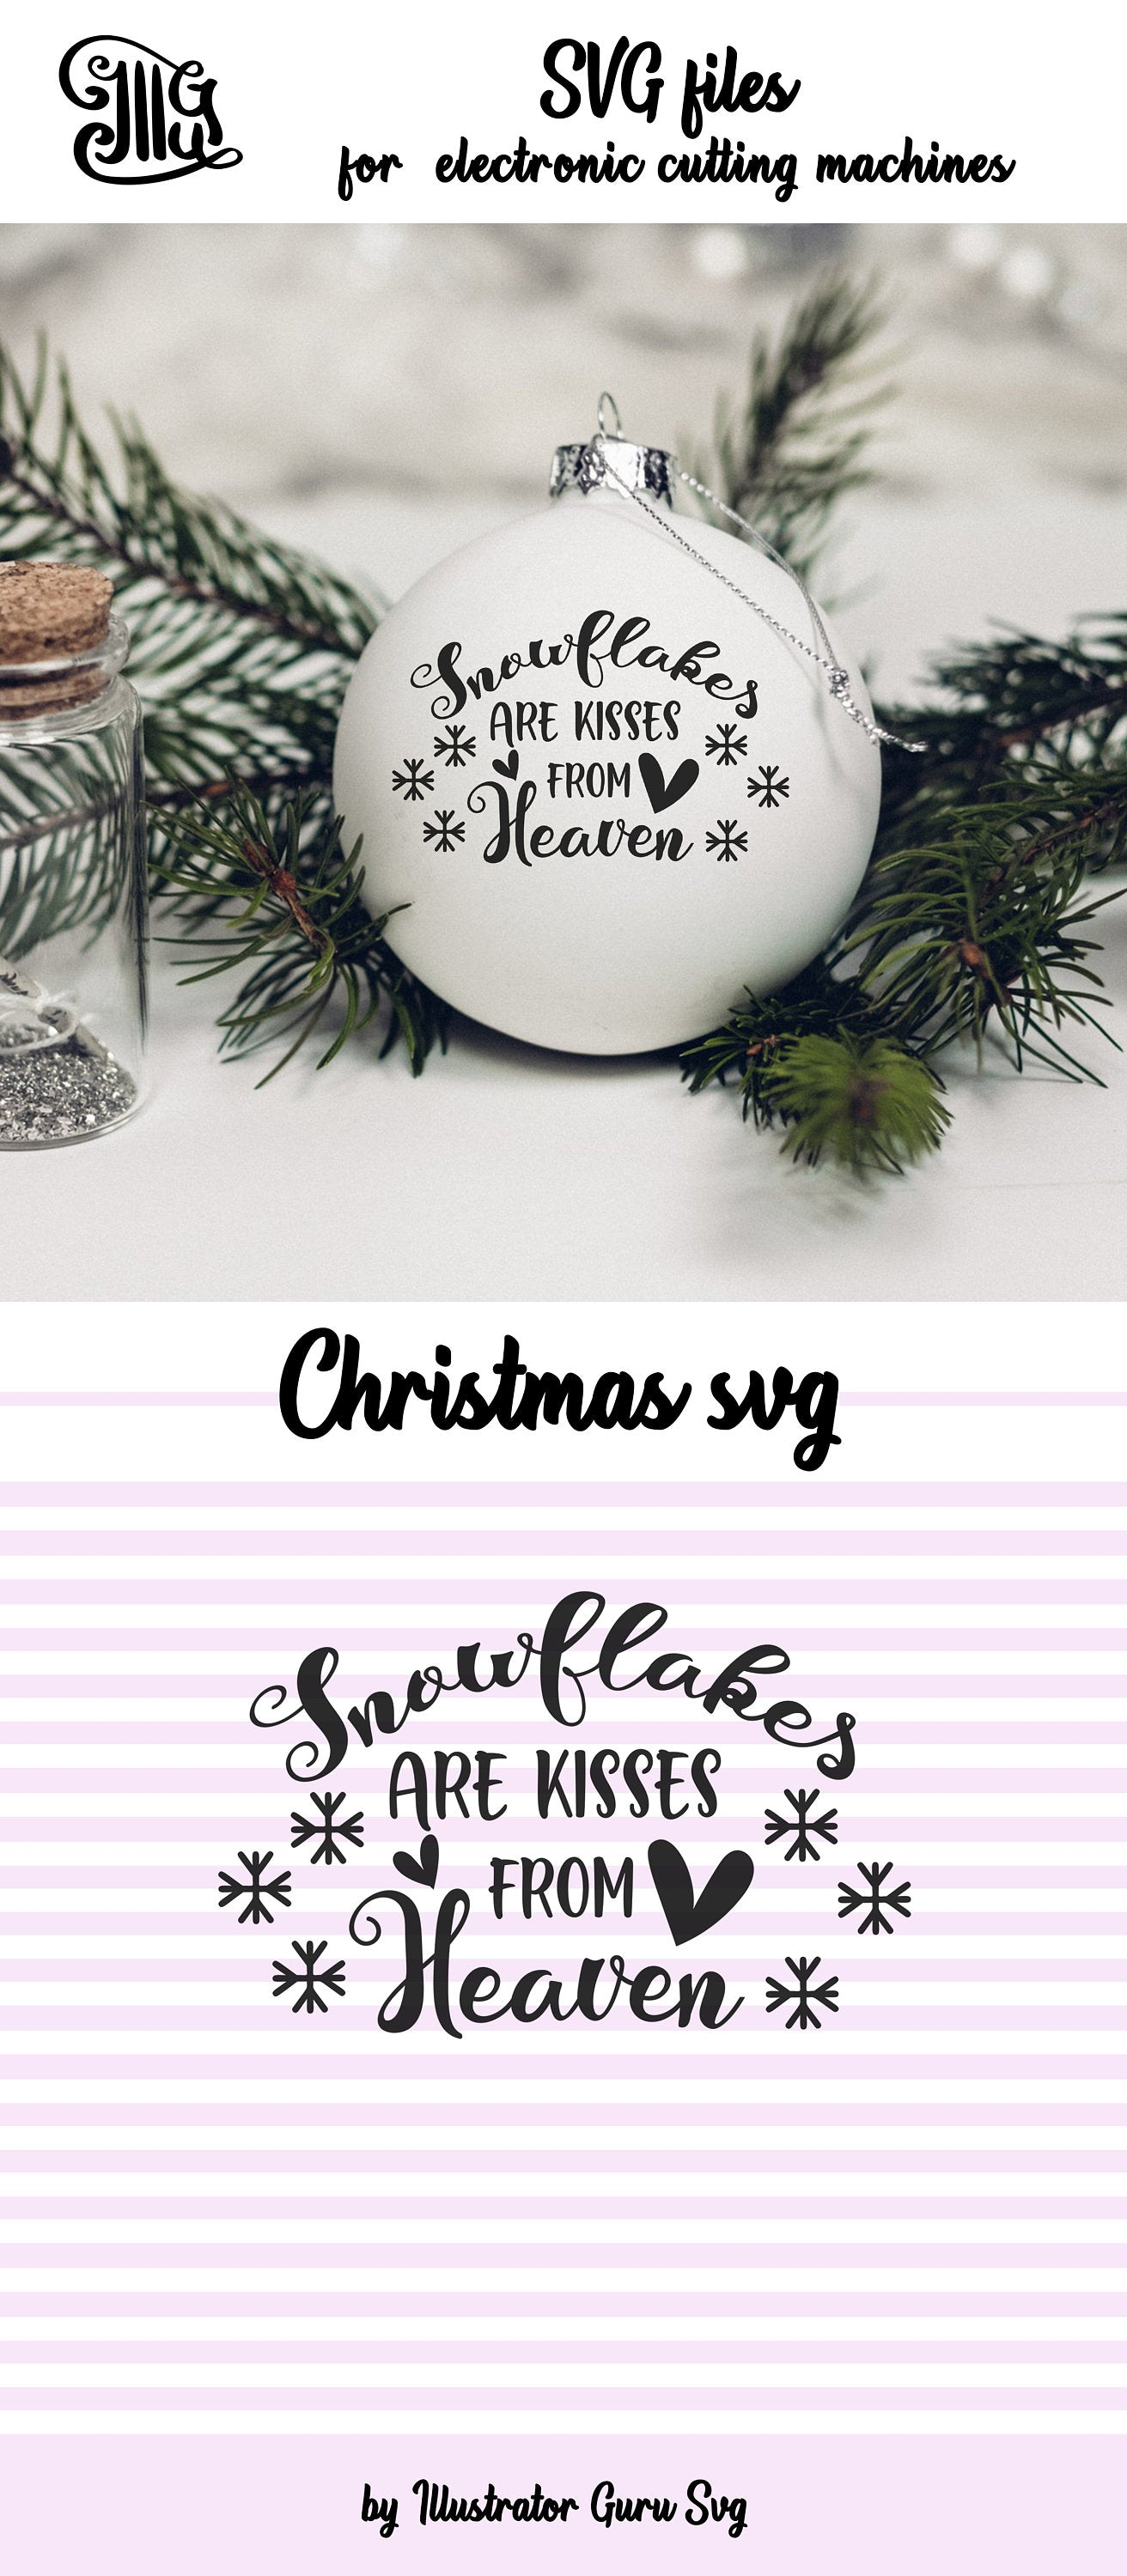 Snowflakes are kisses from heaven svg, Memorial svg, Christmas memorial svg, memorial ornaments svg, memorial clipart, memorial png-by Illustrator Guru